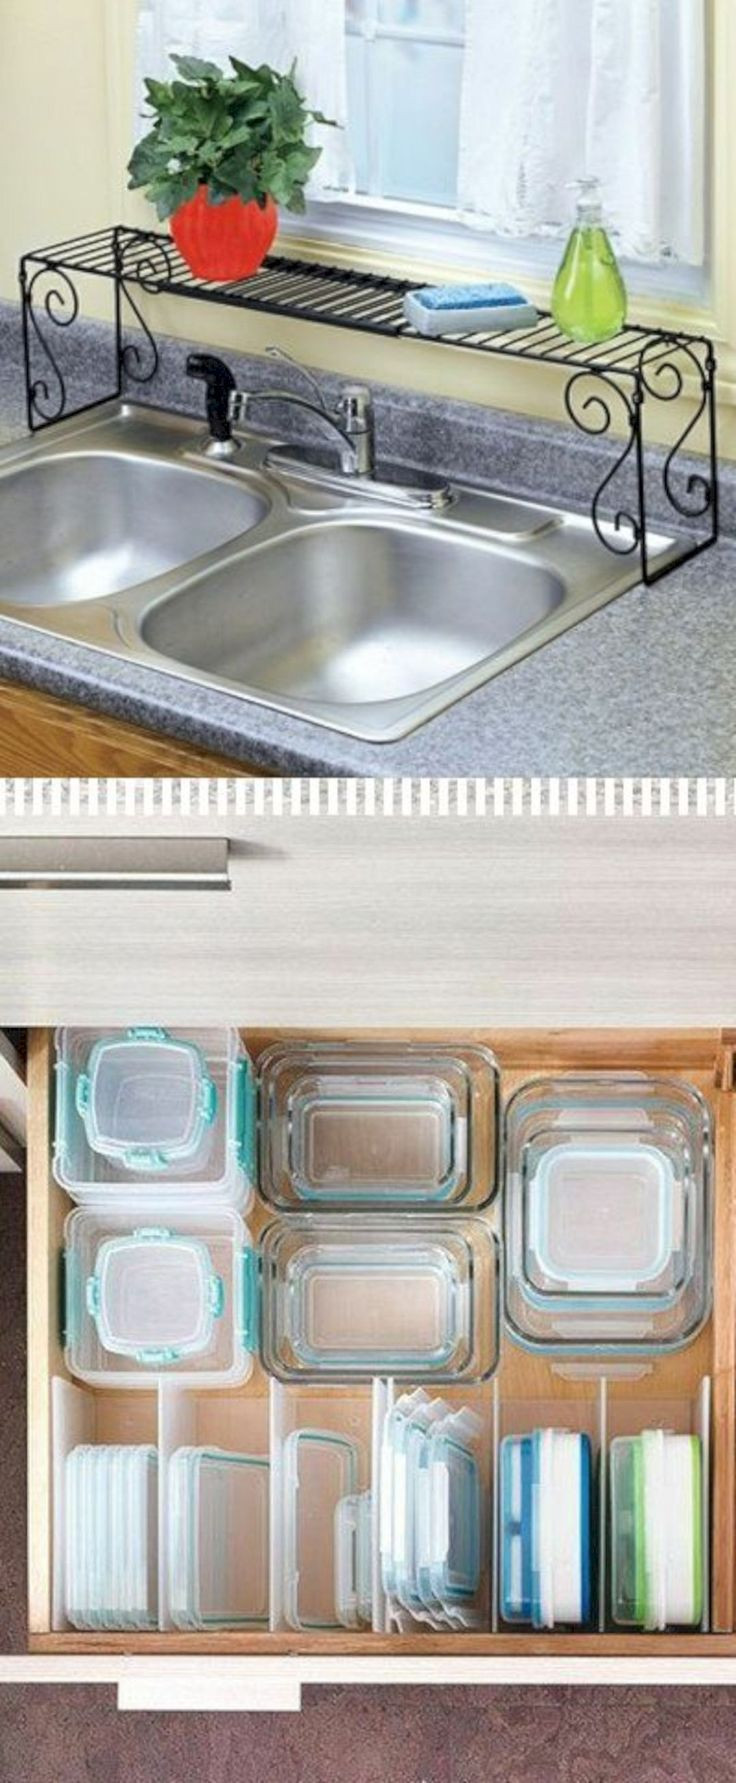 Best ideas about Kitchen Hacks DIY . Save or Pin Best 25 Organizing small homes ideas on Pinterest Now.